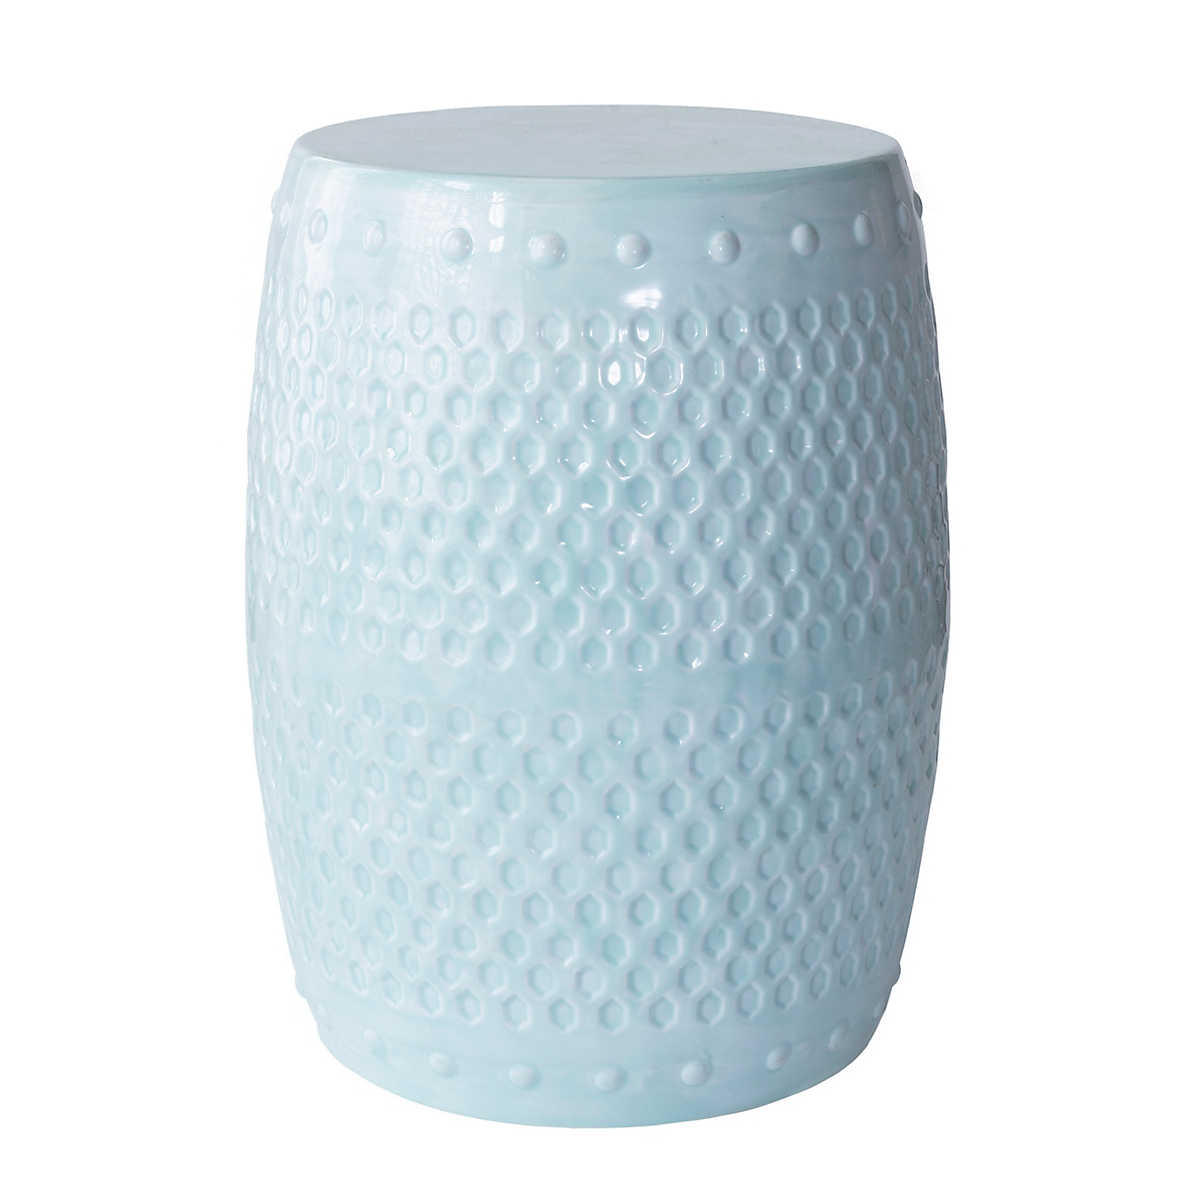 Robinu0027s Egg Blue Glaze Stool